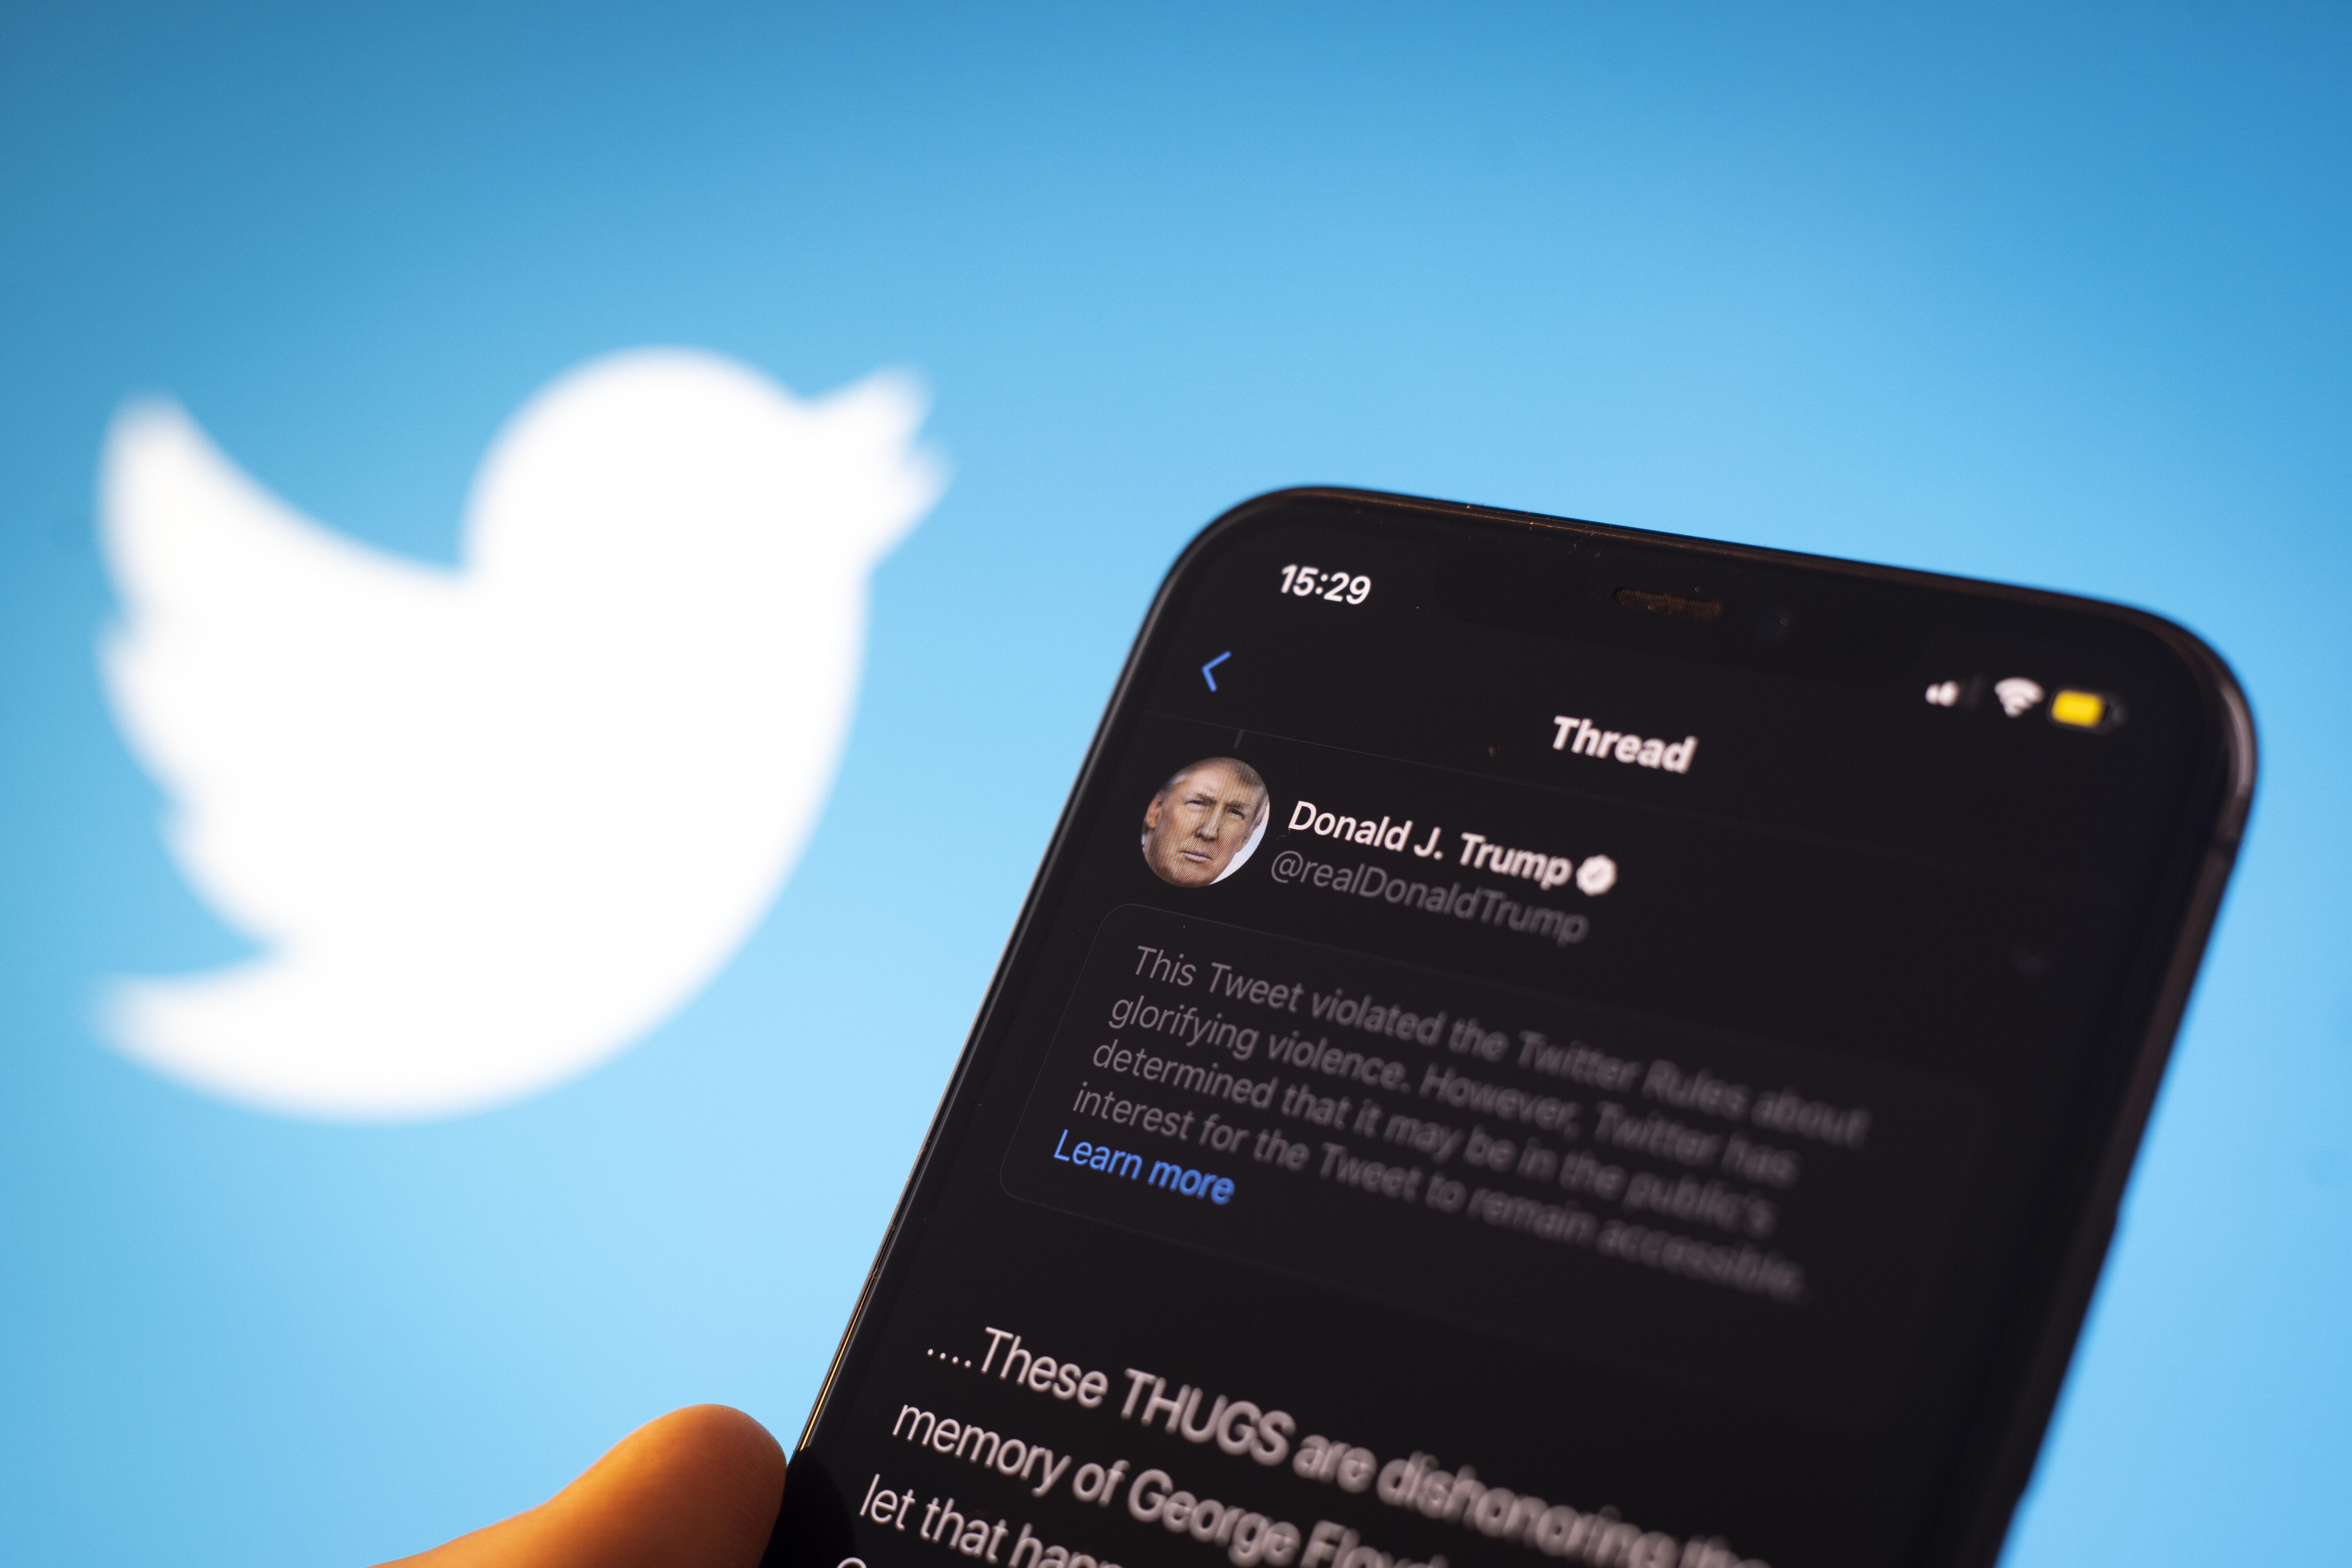 trump-and-tweets-gettyimages-1216138995